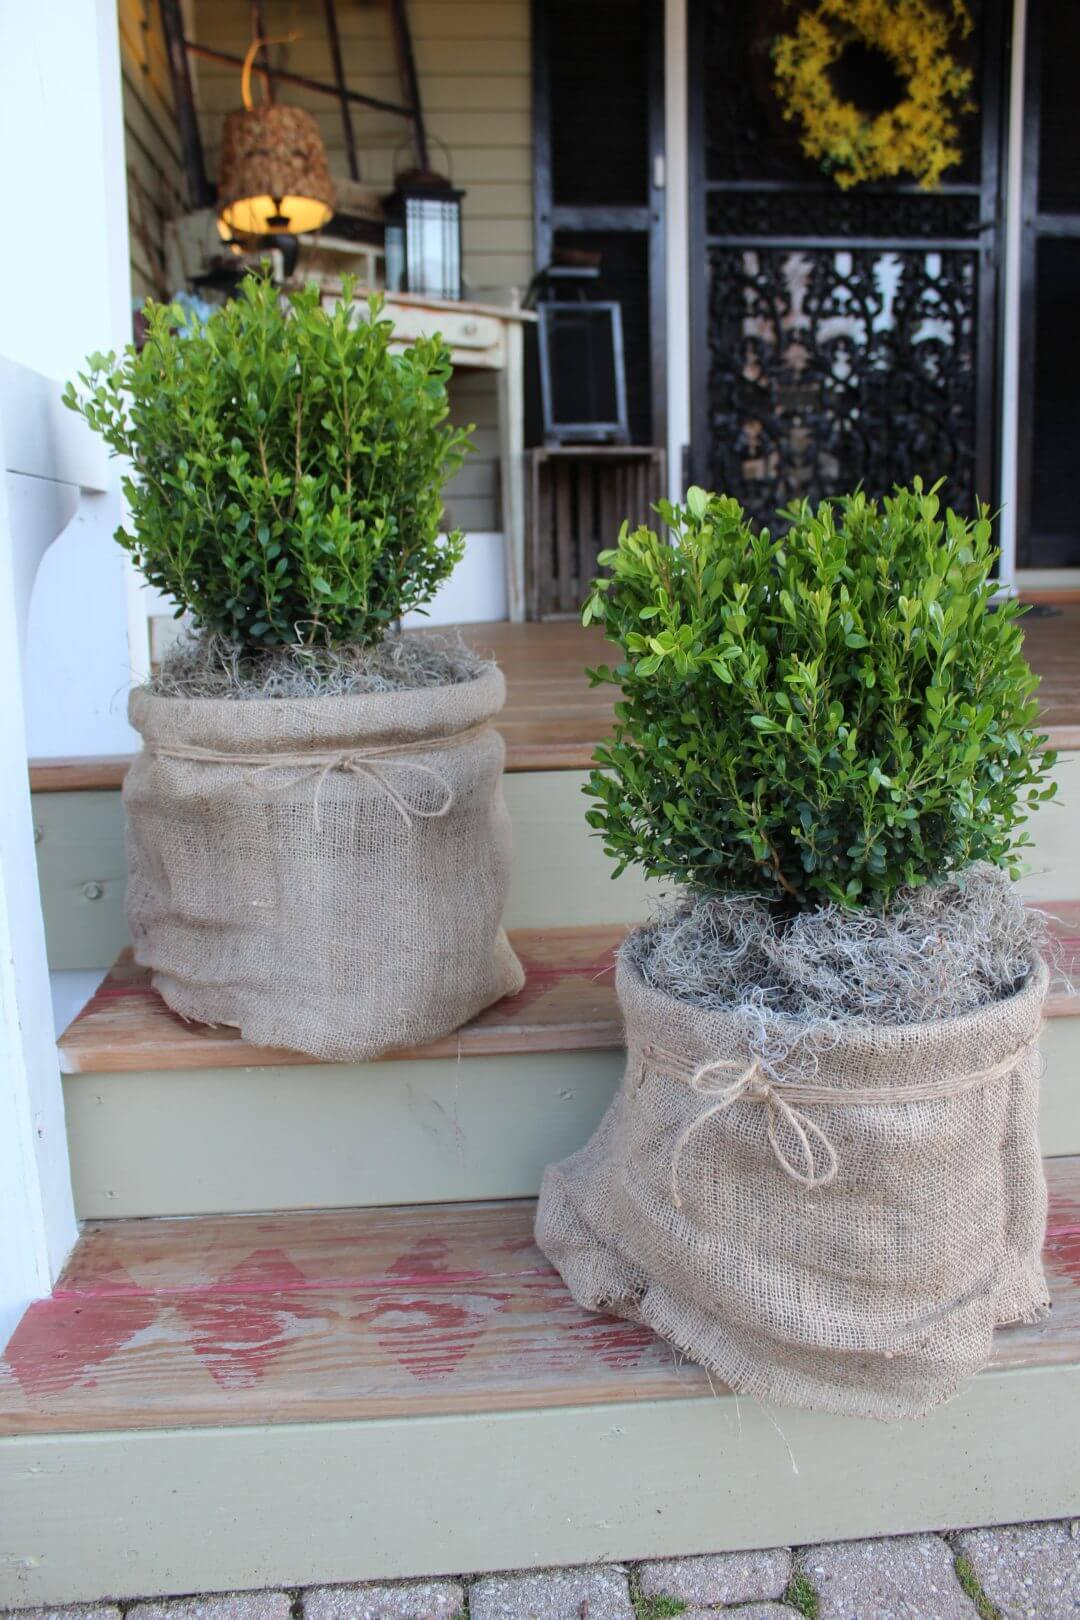 Burlap-Wrapped Rustic Planter with Twine Accent